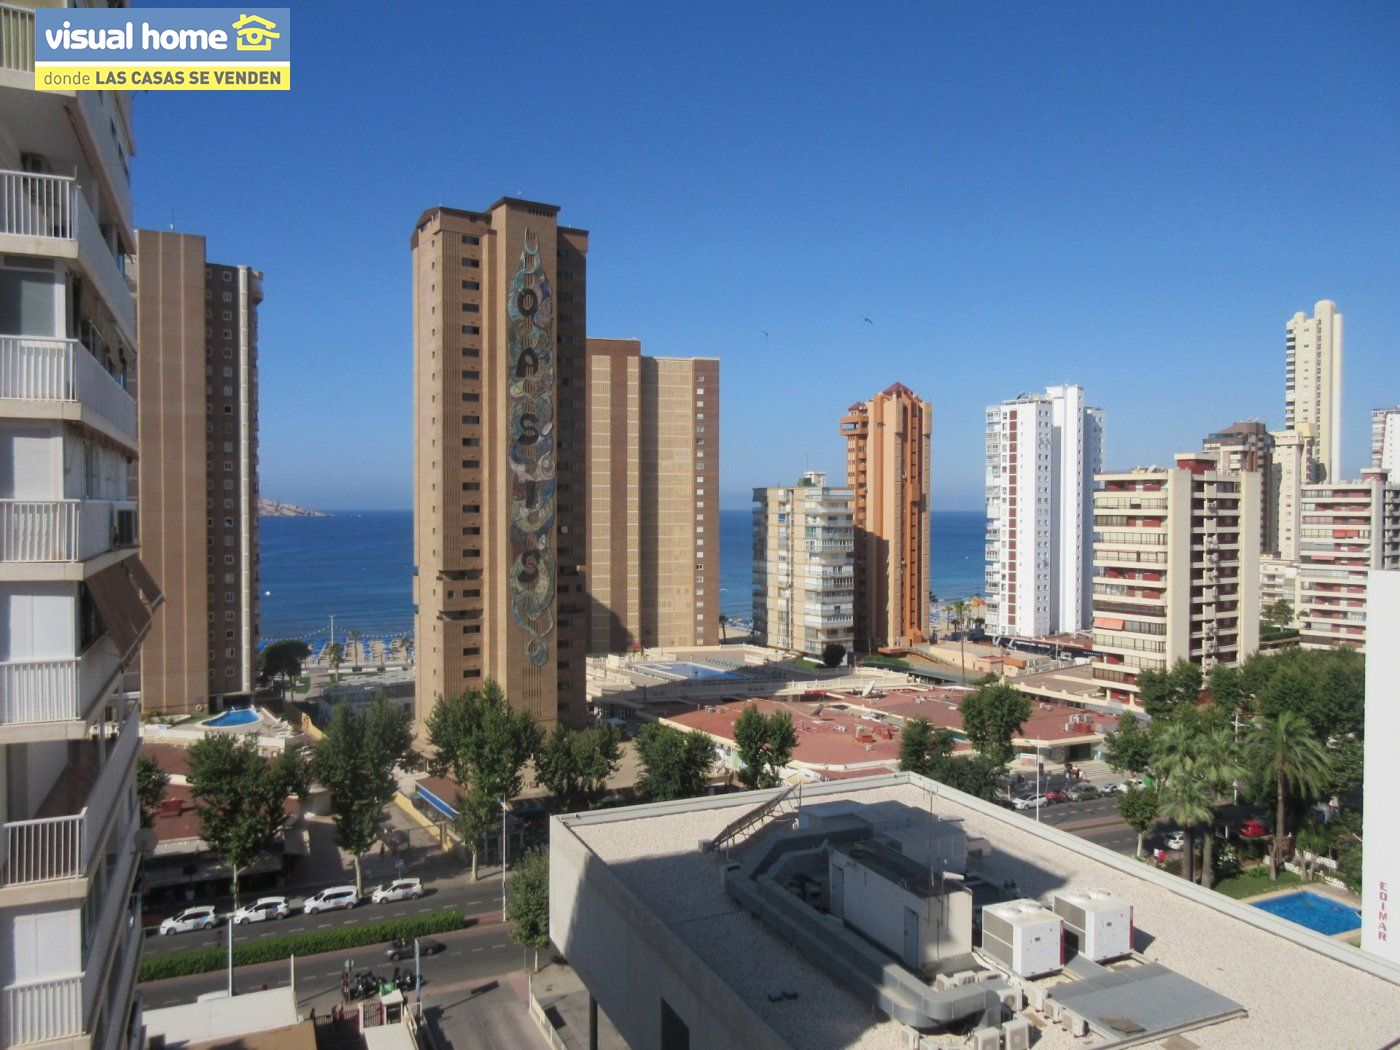 Apartamento de un dormitorio con vistas al mar,  parking y piscina  a 200 mts de la playa Levante